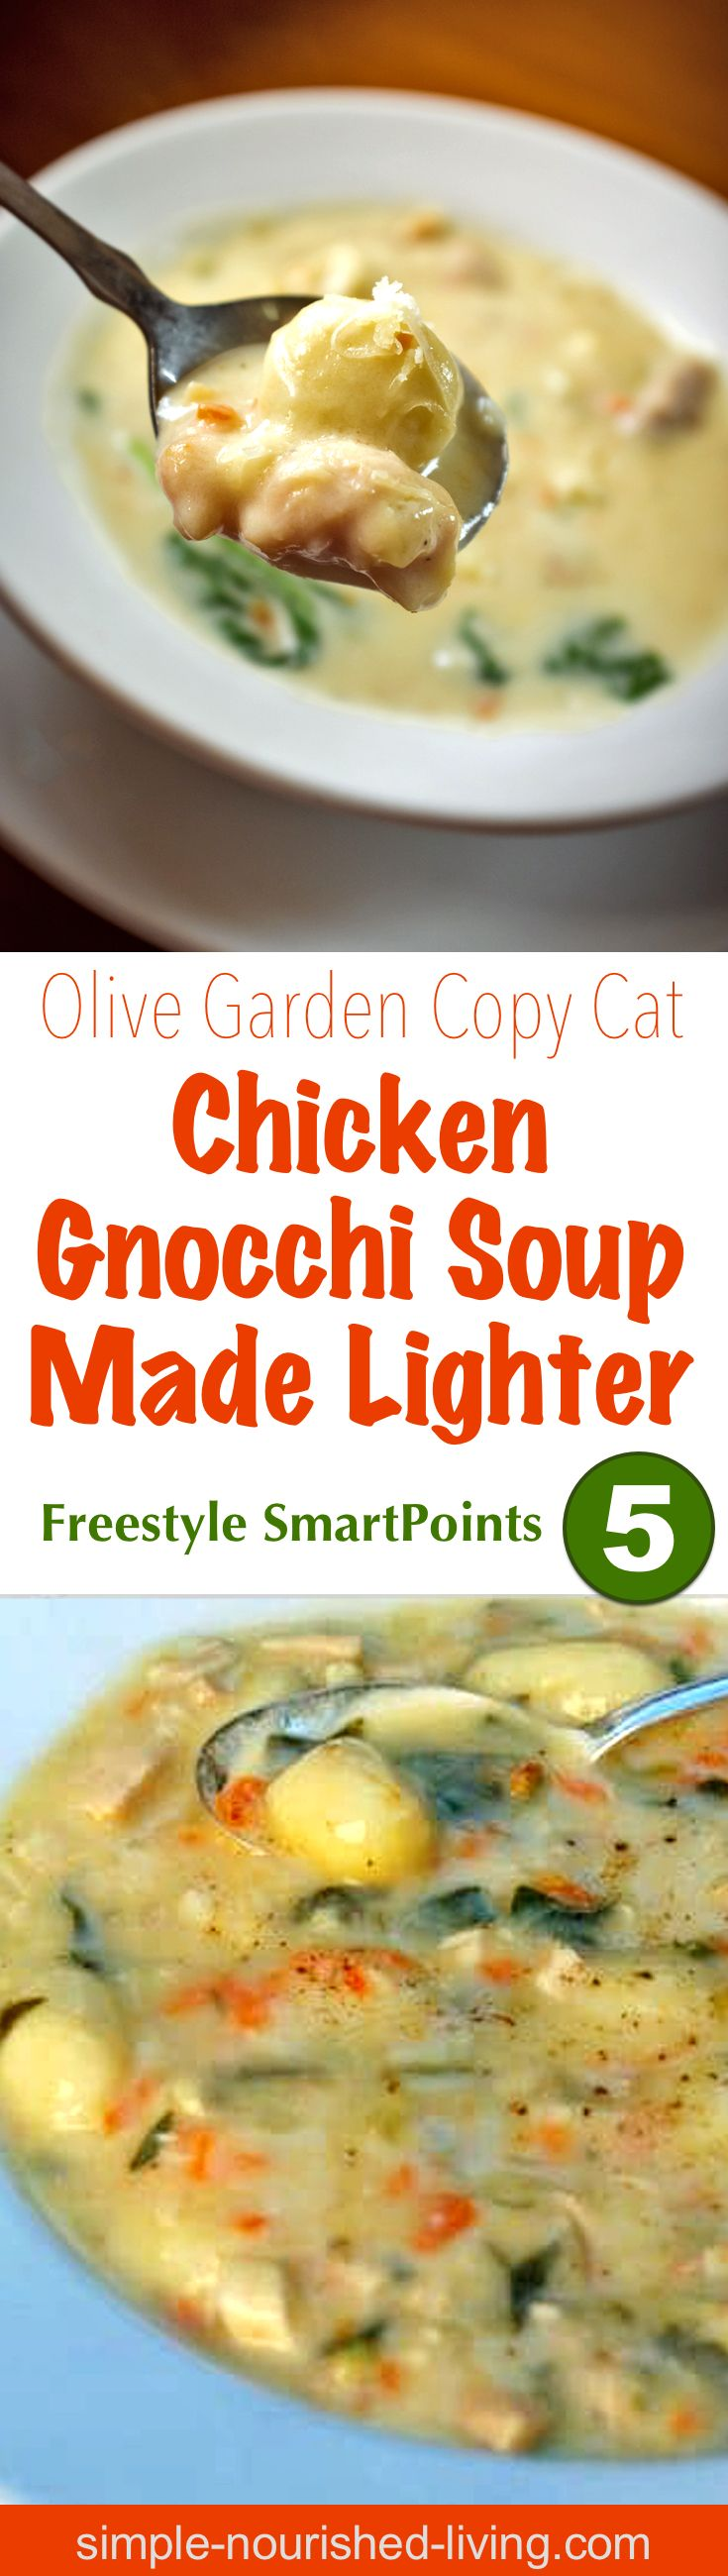 Are you a fan of Olive Garden's Chicken Gnocchi Soup, but not all the fat and calories? I think you'll love my version of Olive Garden Chicken Gnocchi Soup Made Lighter.Tender bites of chicken, Italian potato dumplings and vegetables suspended in a thick, creamy flavorful broth, this soup is hearty enough to be meal-worthy. (Simple-Nourished-Living.com)